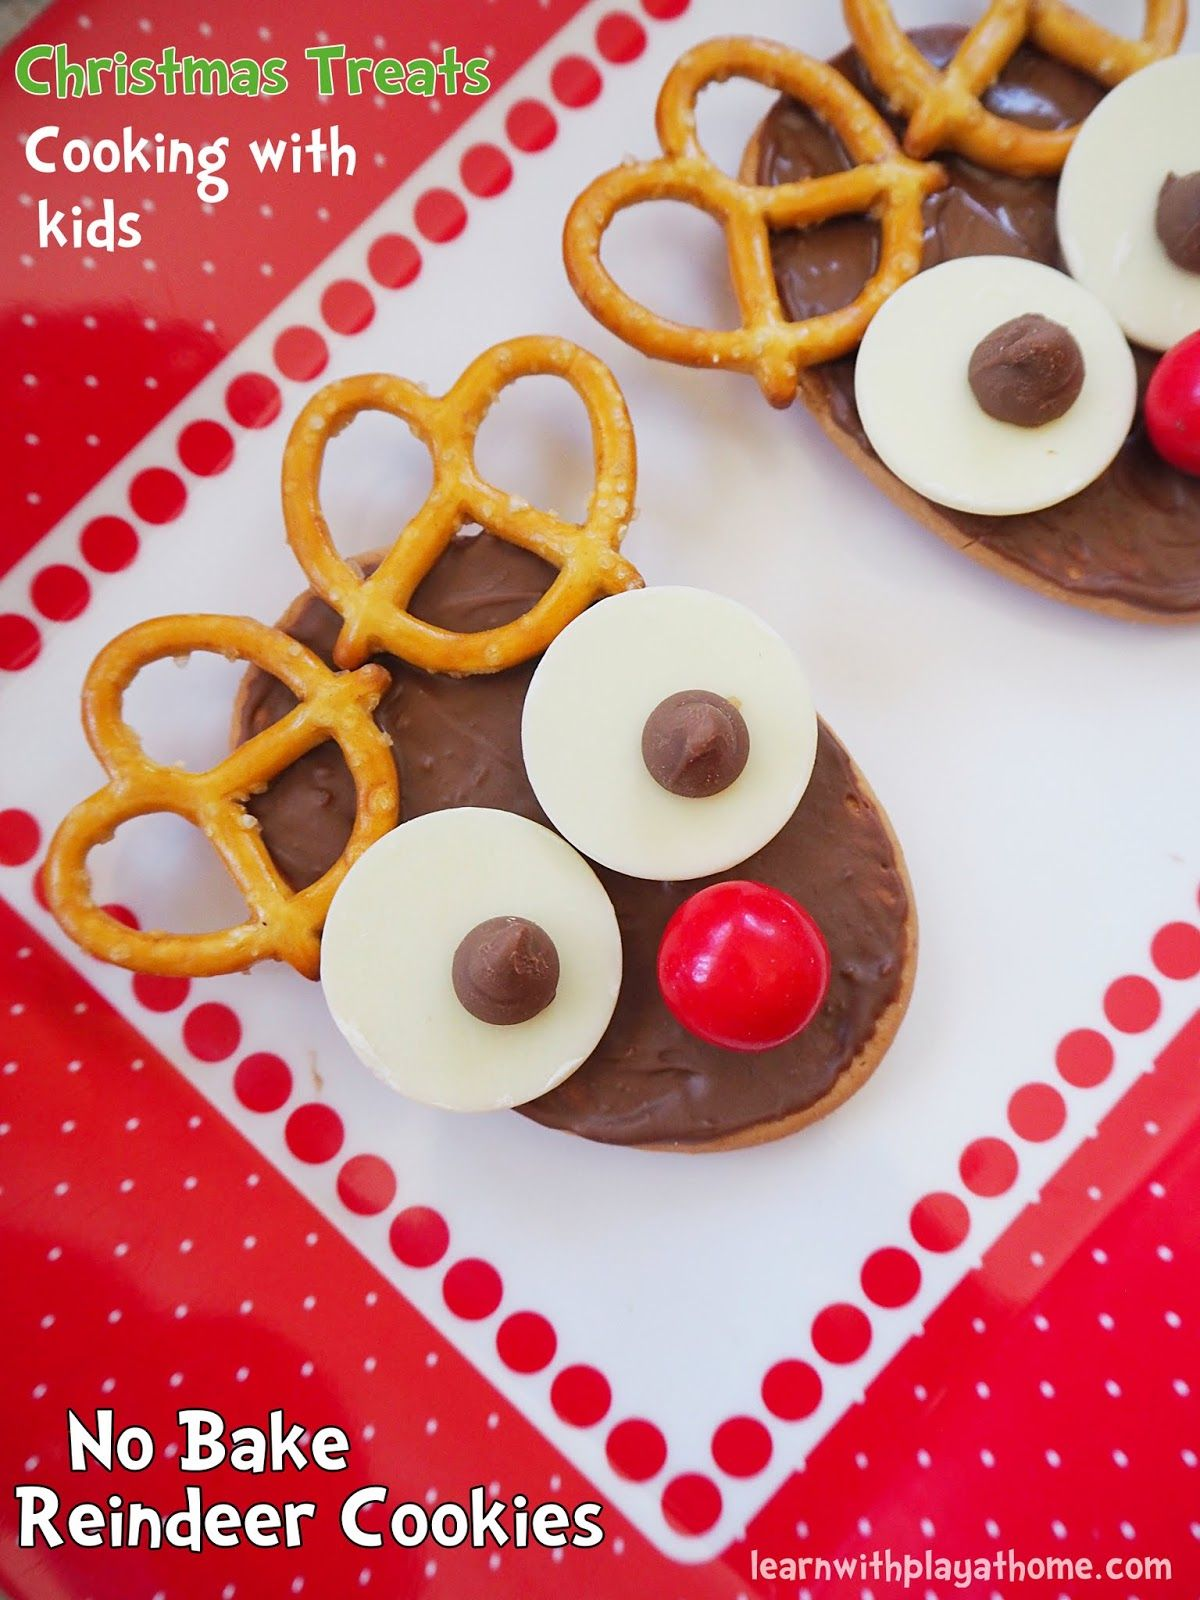 No Bake Reindeer Cookies Fun Christmas Food Idea Food Creations